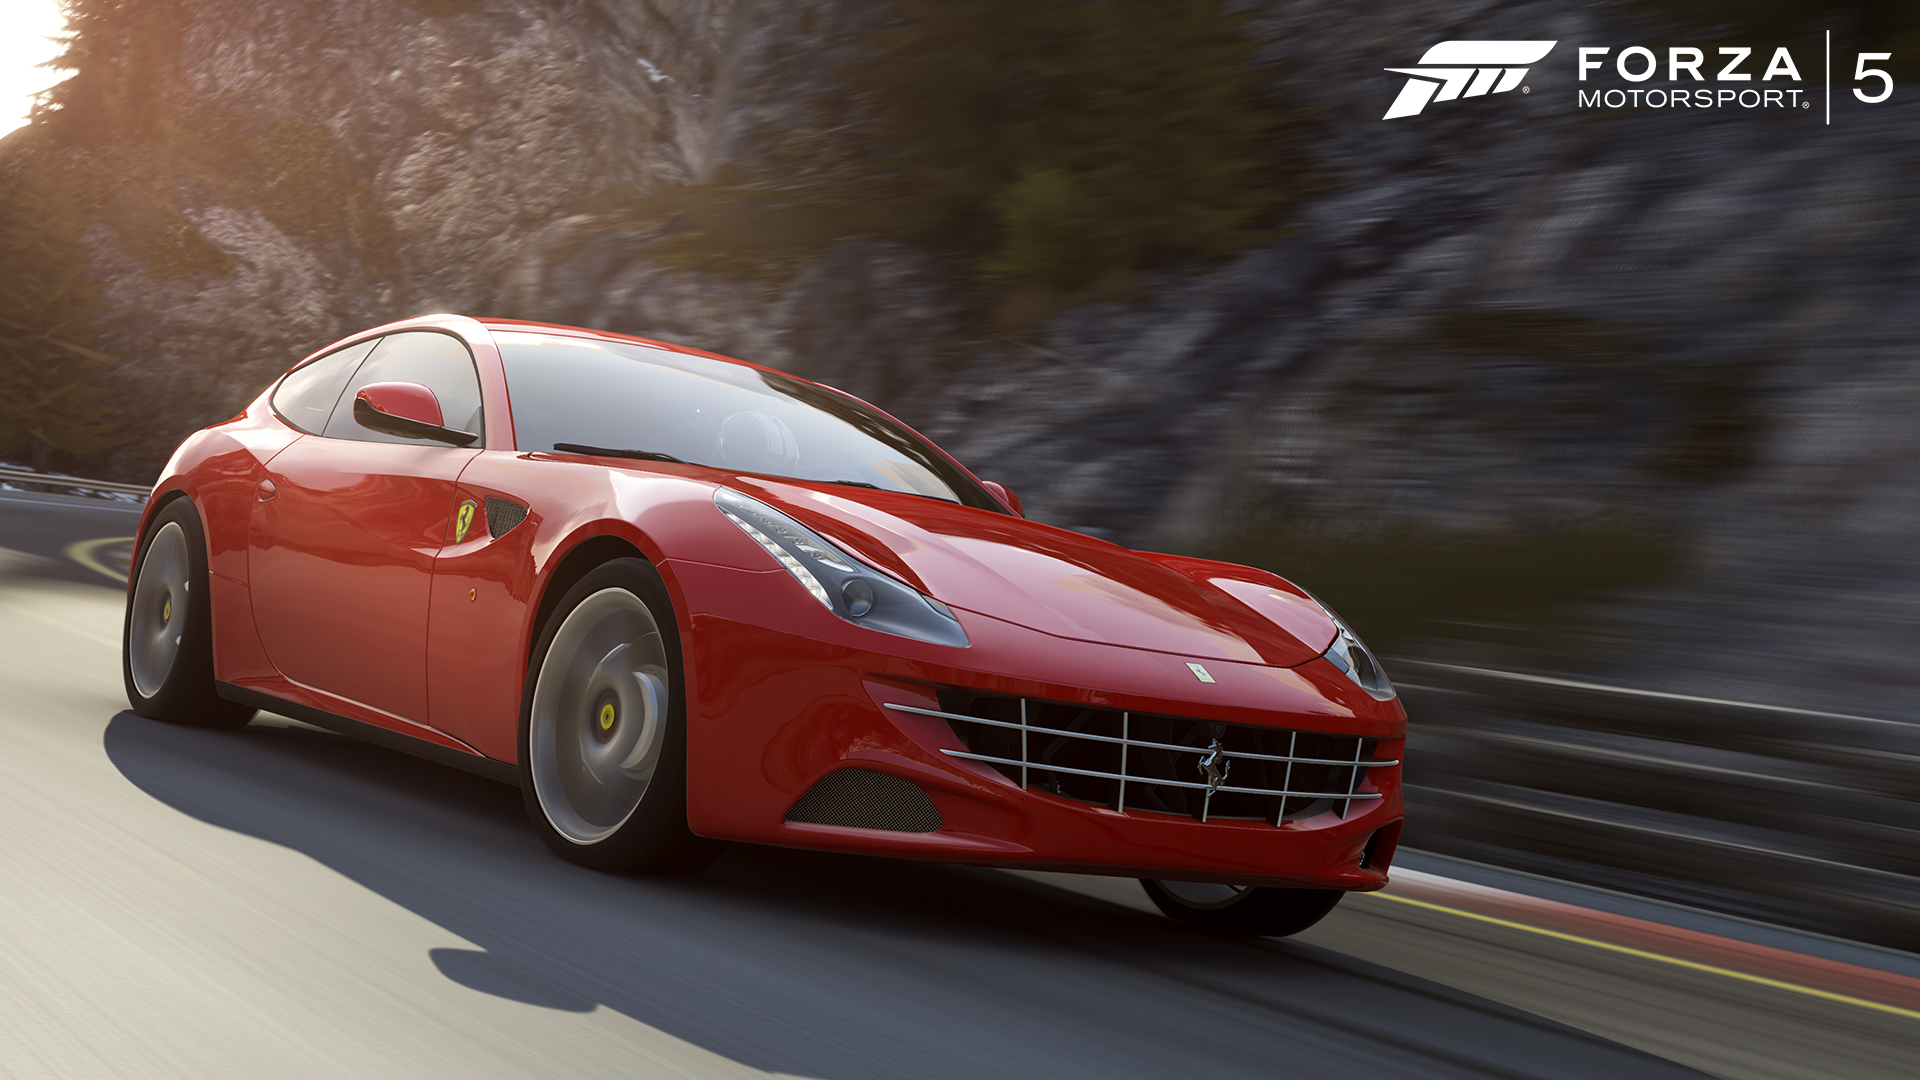 """Beginning this week at """"select"""" United States retailers, Microsoft will include a free digital copy of Forza Motorsport 5 with purchases of the $500 system."""